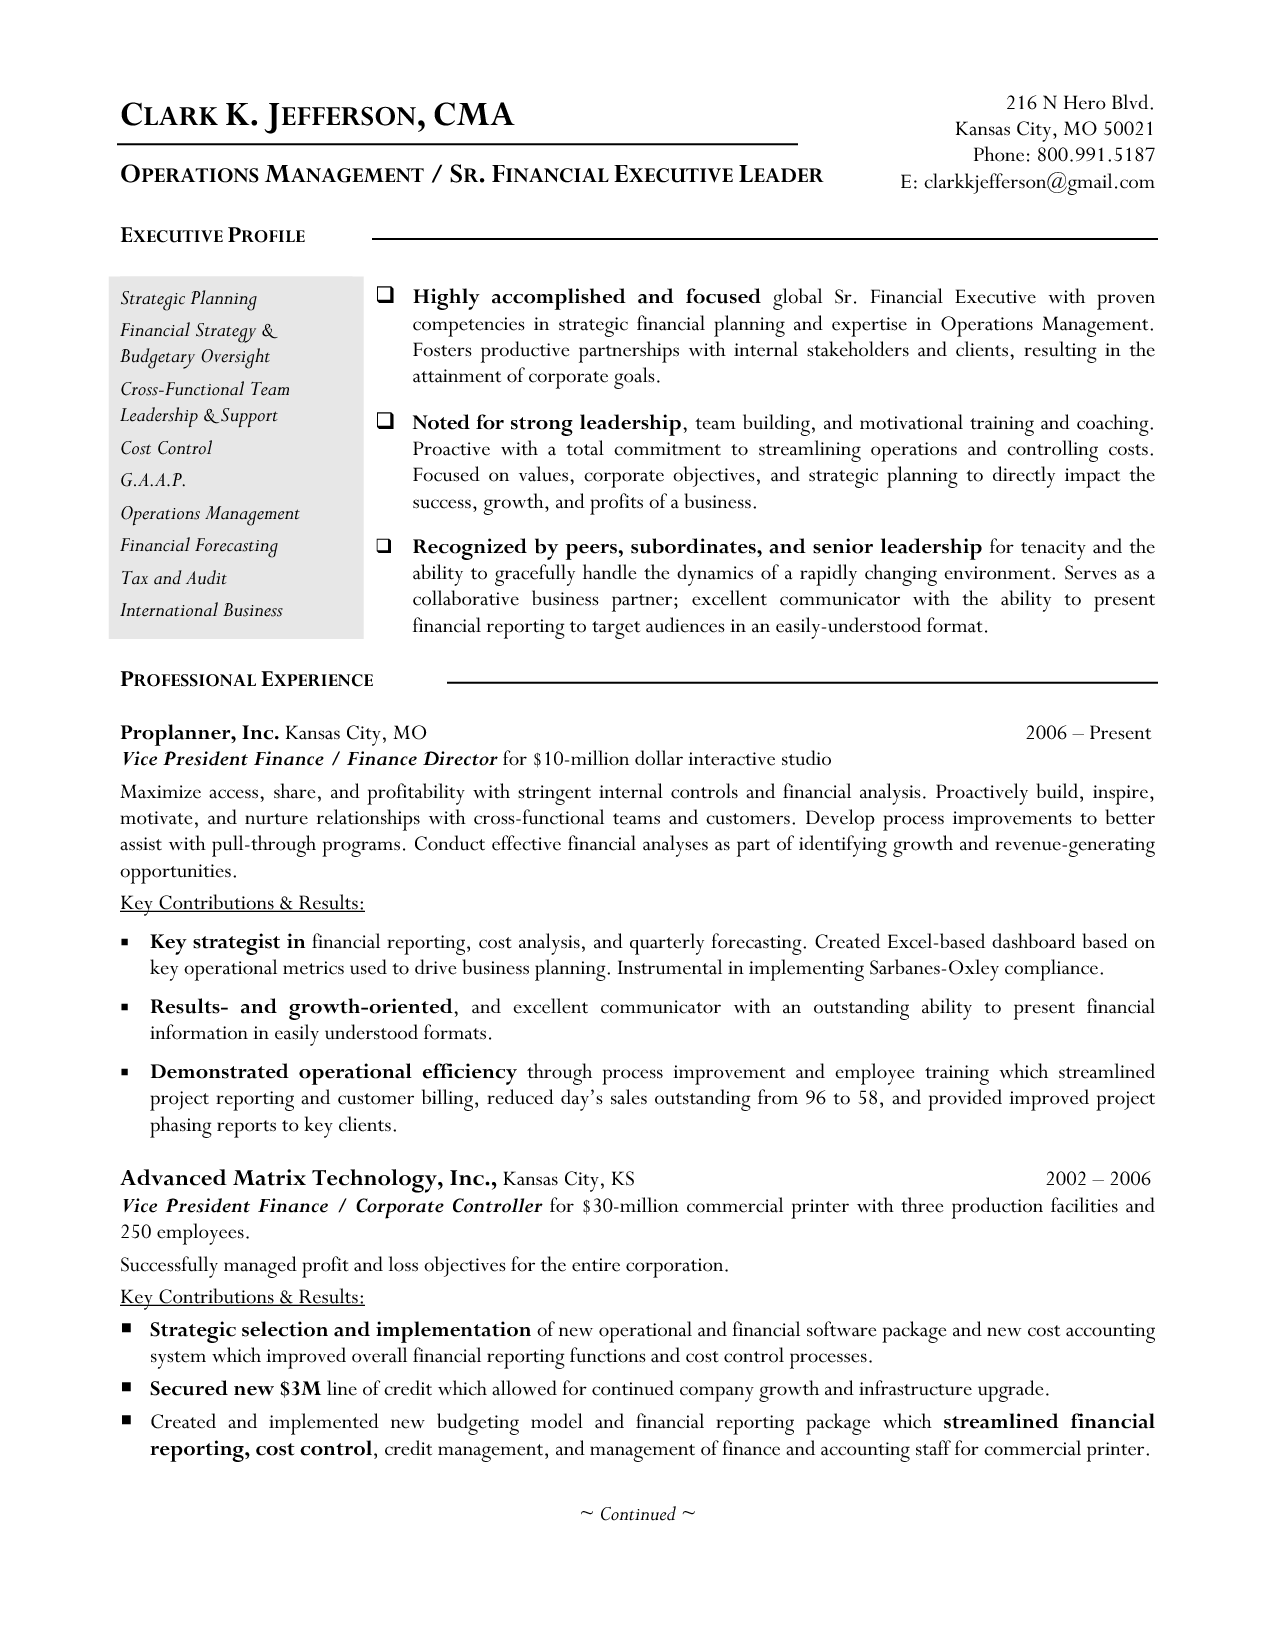 resume-printable-operations-management-with-strategic-planning-with ...